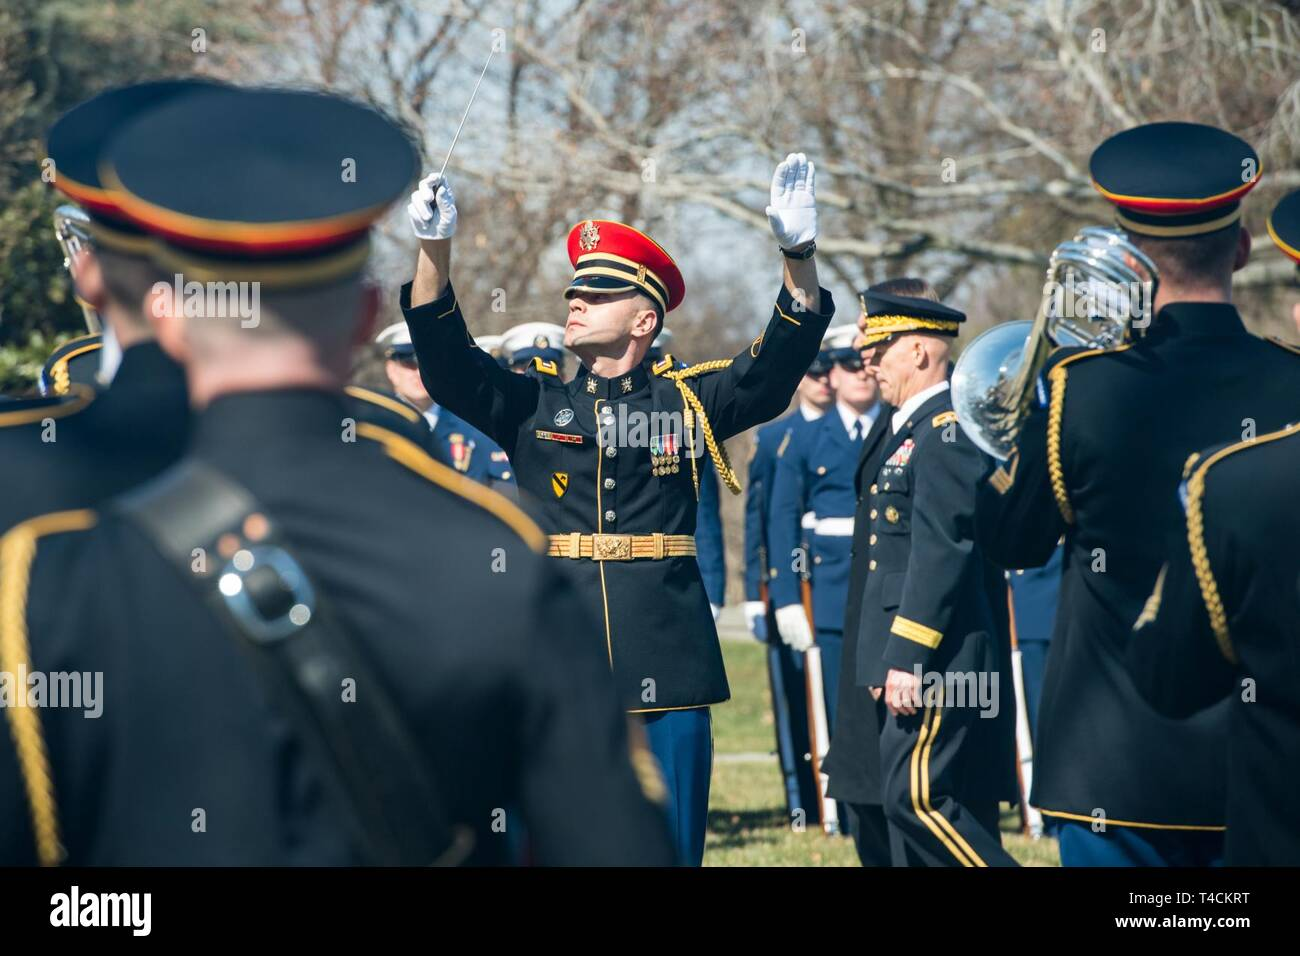 """U.S. Soldiers assigned to the U.S. Army Band """"Pershing's Own"""" perform in an Armed Forces Full Honor Wreath-laying ceremony in honor of the President of Brazil Jair Bolsonaro at Arlington National Cemetery, Arlington, Va., March 19, 2019. The event was hosted by U.S. Army Maj. Gen. Joeseph R. Calloway, Director of Personnel Management Office of the Deputy Chief of Staff-G1. - Stock Image"""